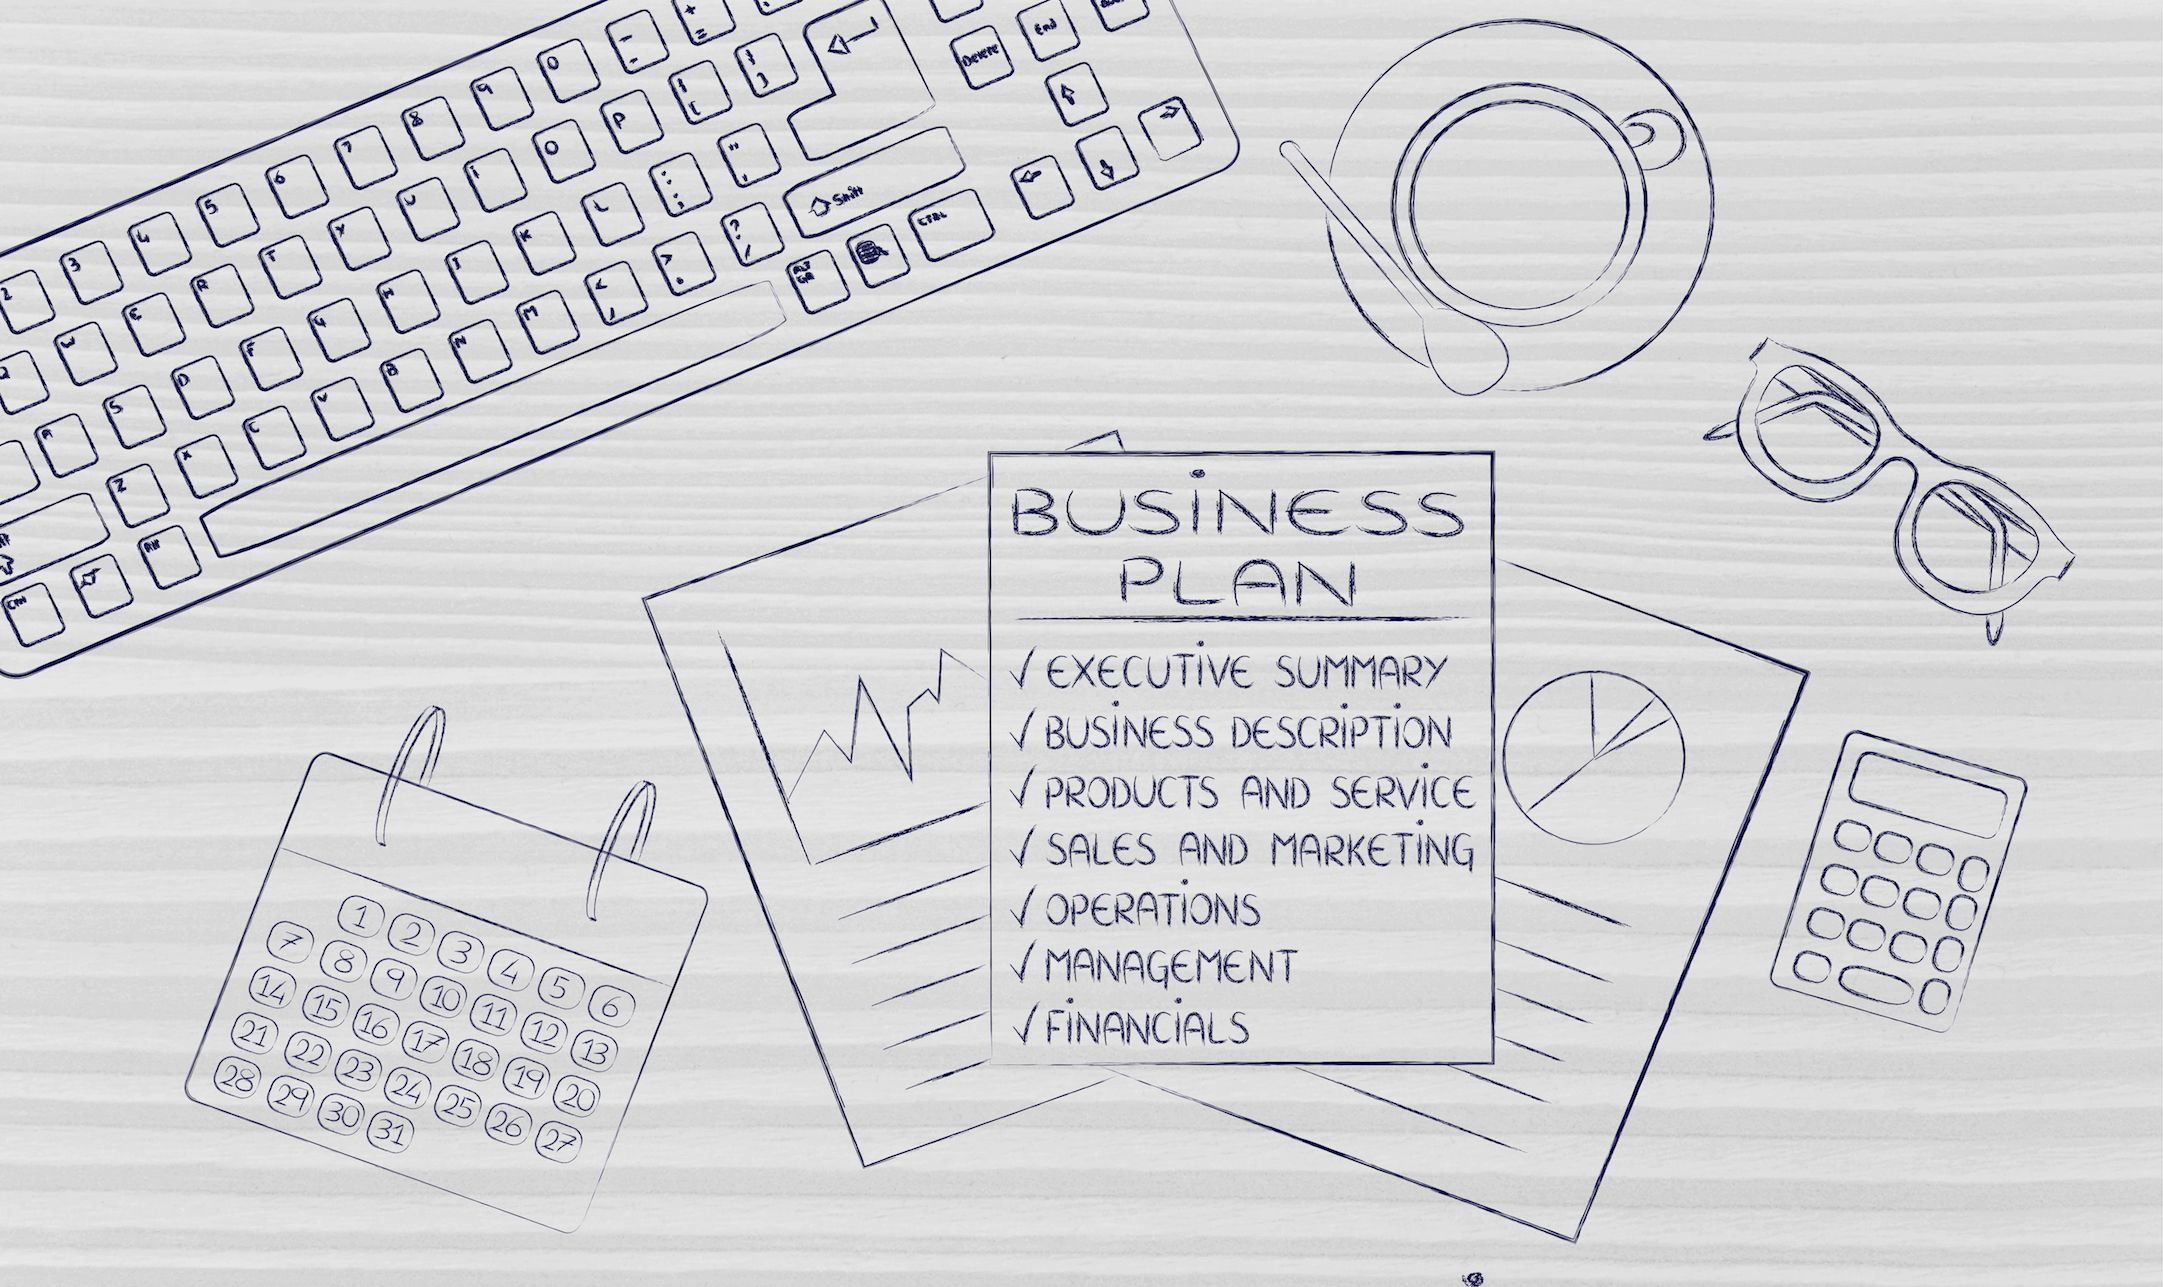 An event business plan helps you focus on the goals of the